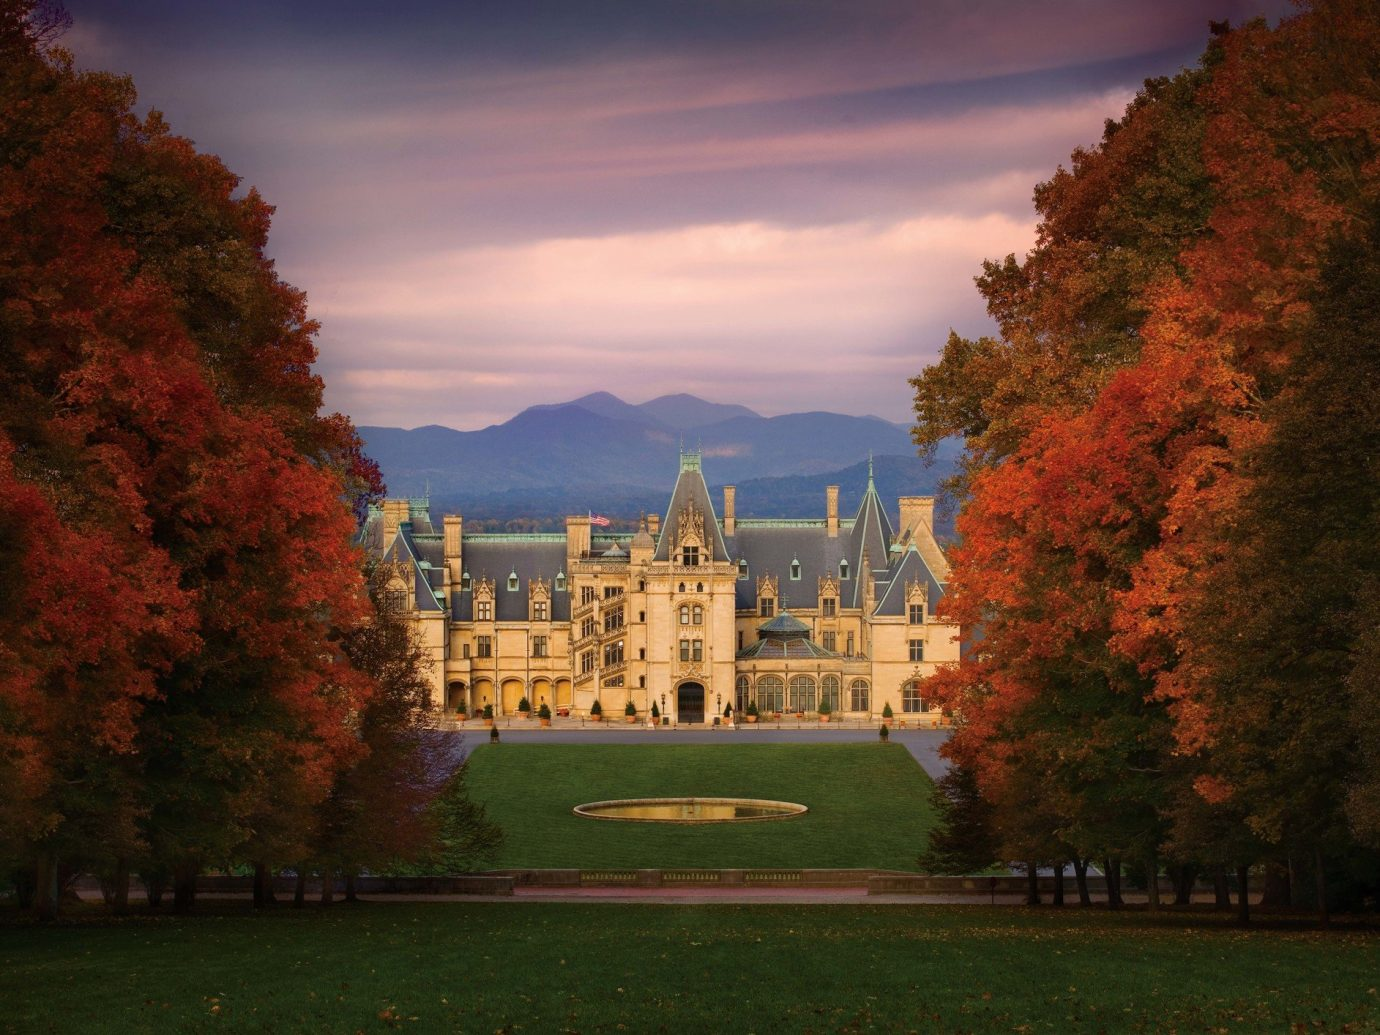 Architecture autumn building Elegant Exterior extravagant Fall fall colors Fall leaves fancy foliage golden hour Greenery Historic isolation Luxury Mountains Nature Outdoors regal remote Scenic views sophisticated Sunset trees Trip Ideas view tree outdoor grass sky season plant leaf morning evening woody plant reflection flower château castle dusk sunlight cityscape Forest lush